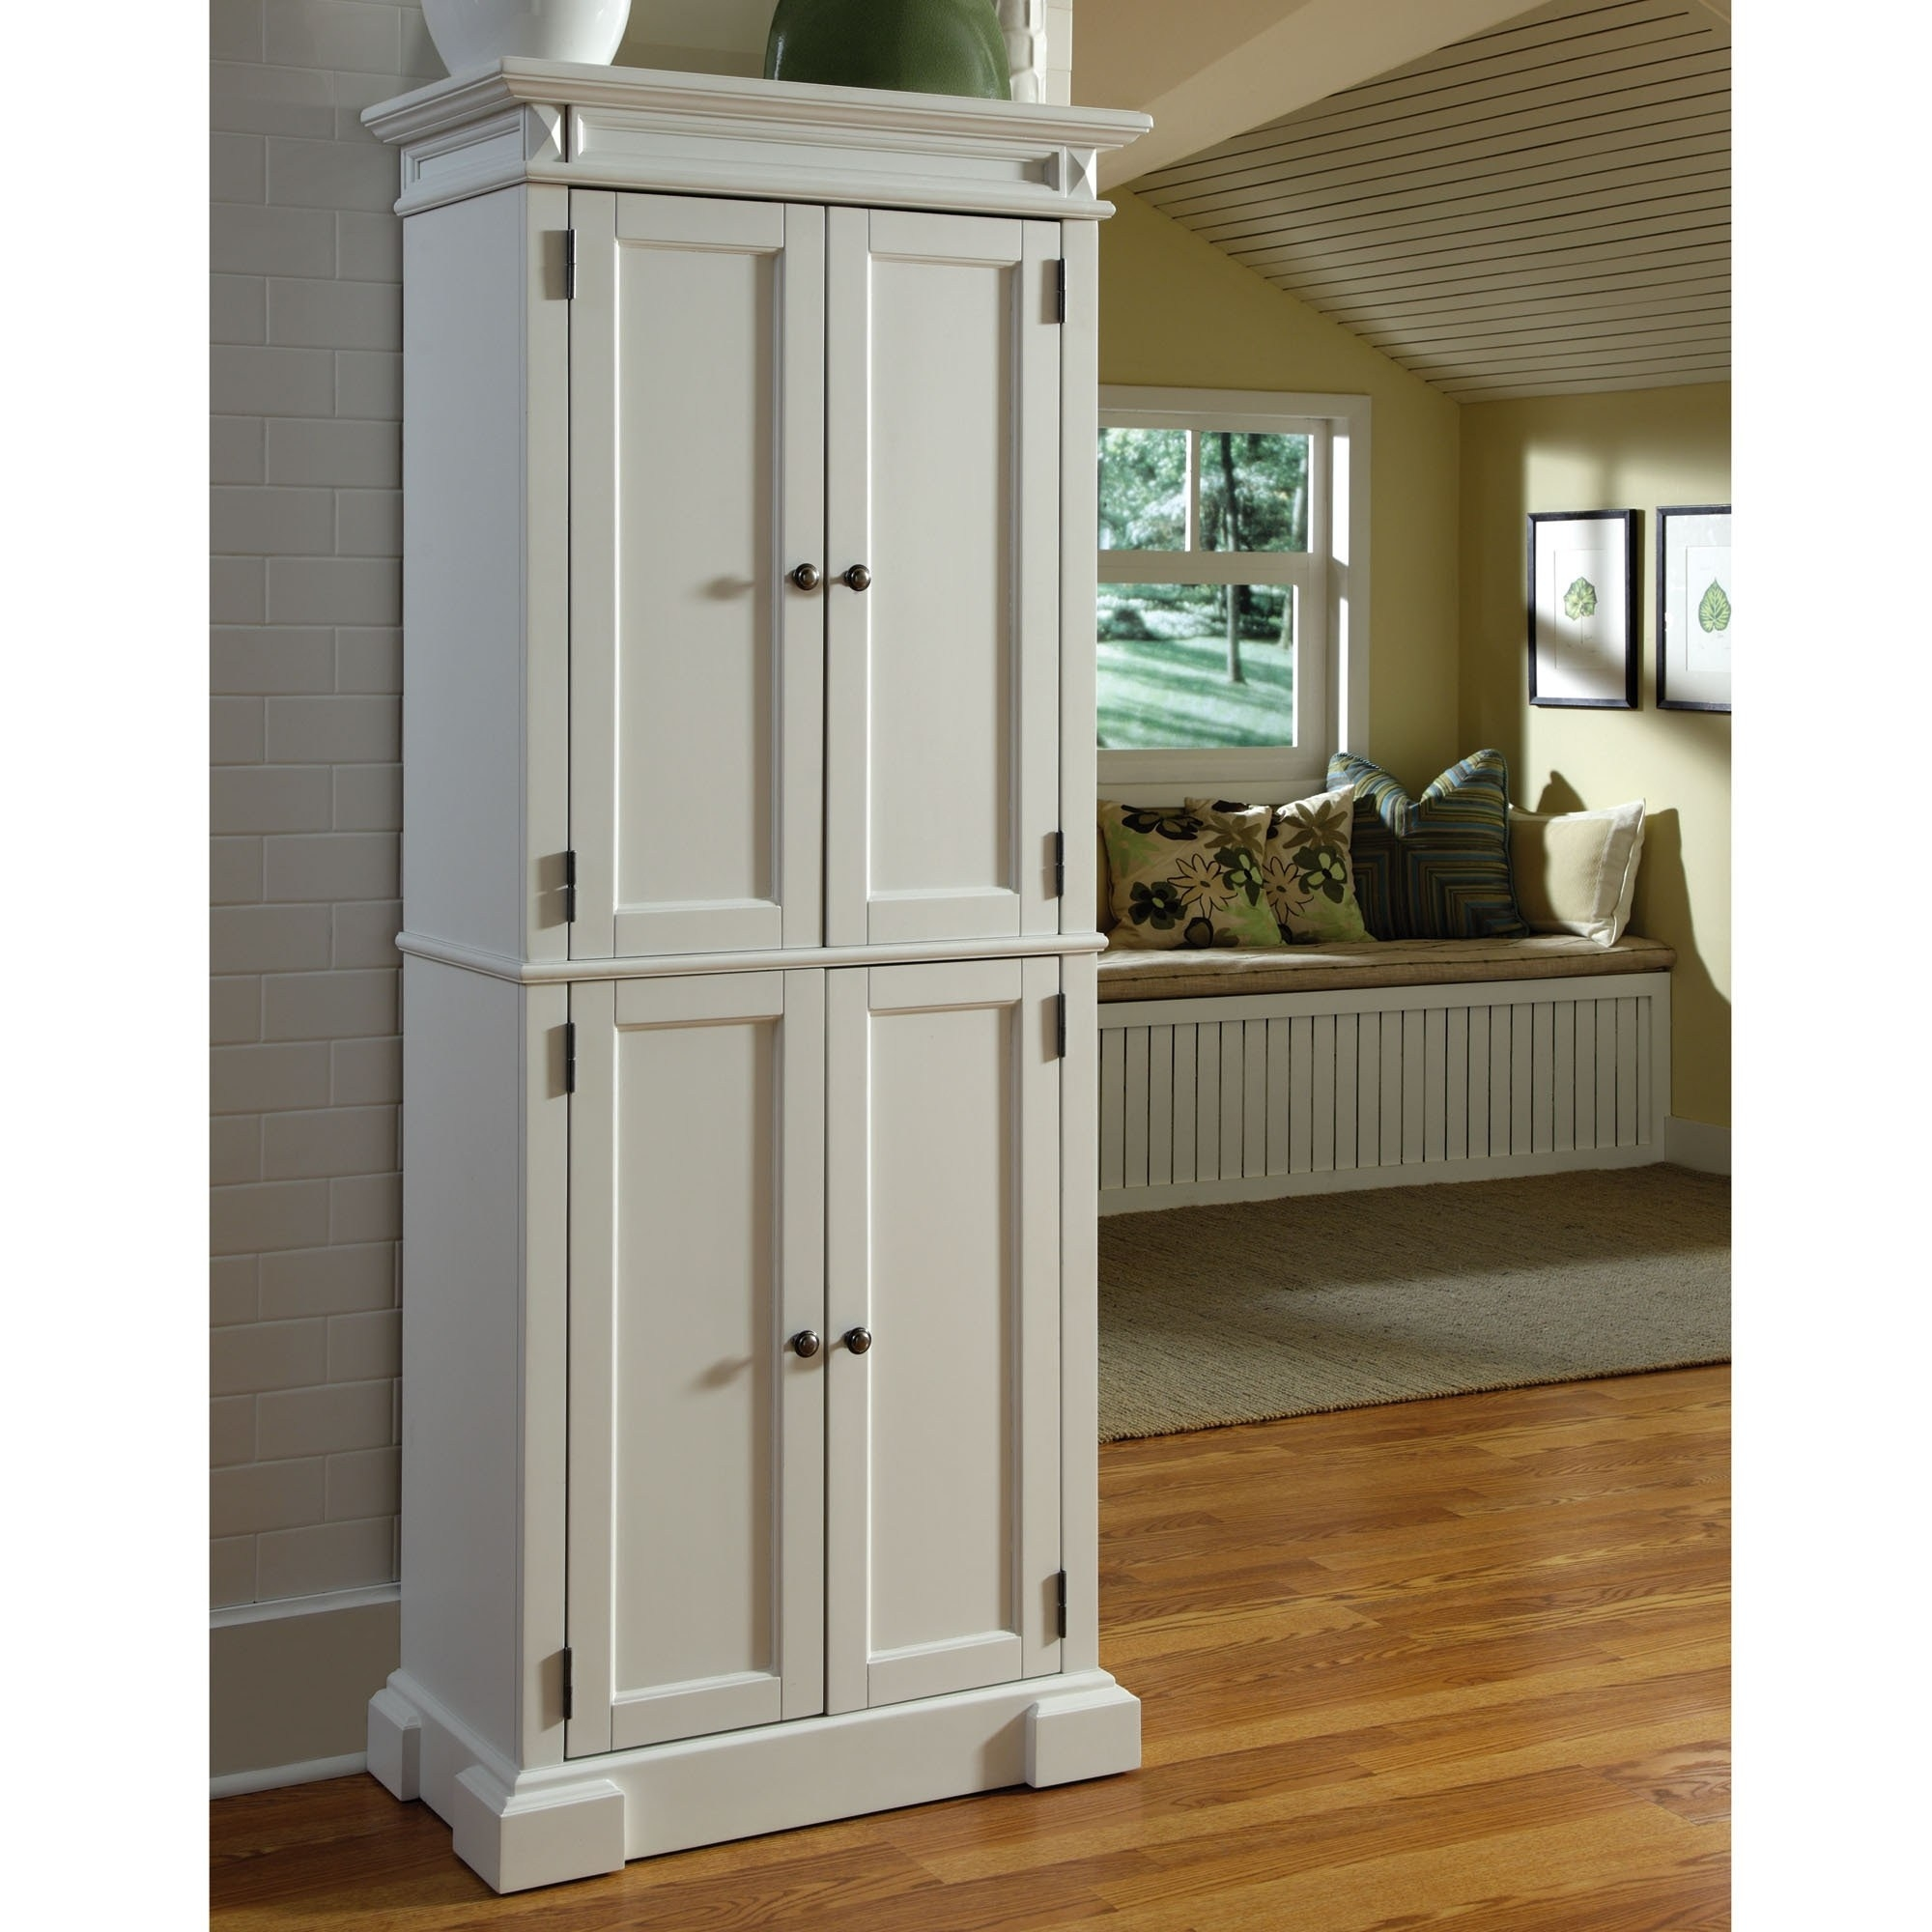 Free Standing Storage Cabinets With Free Standing Storage Cupboards (Image 8 of 15)